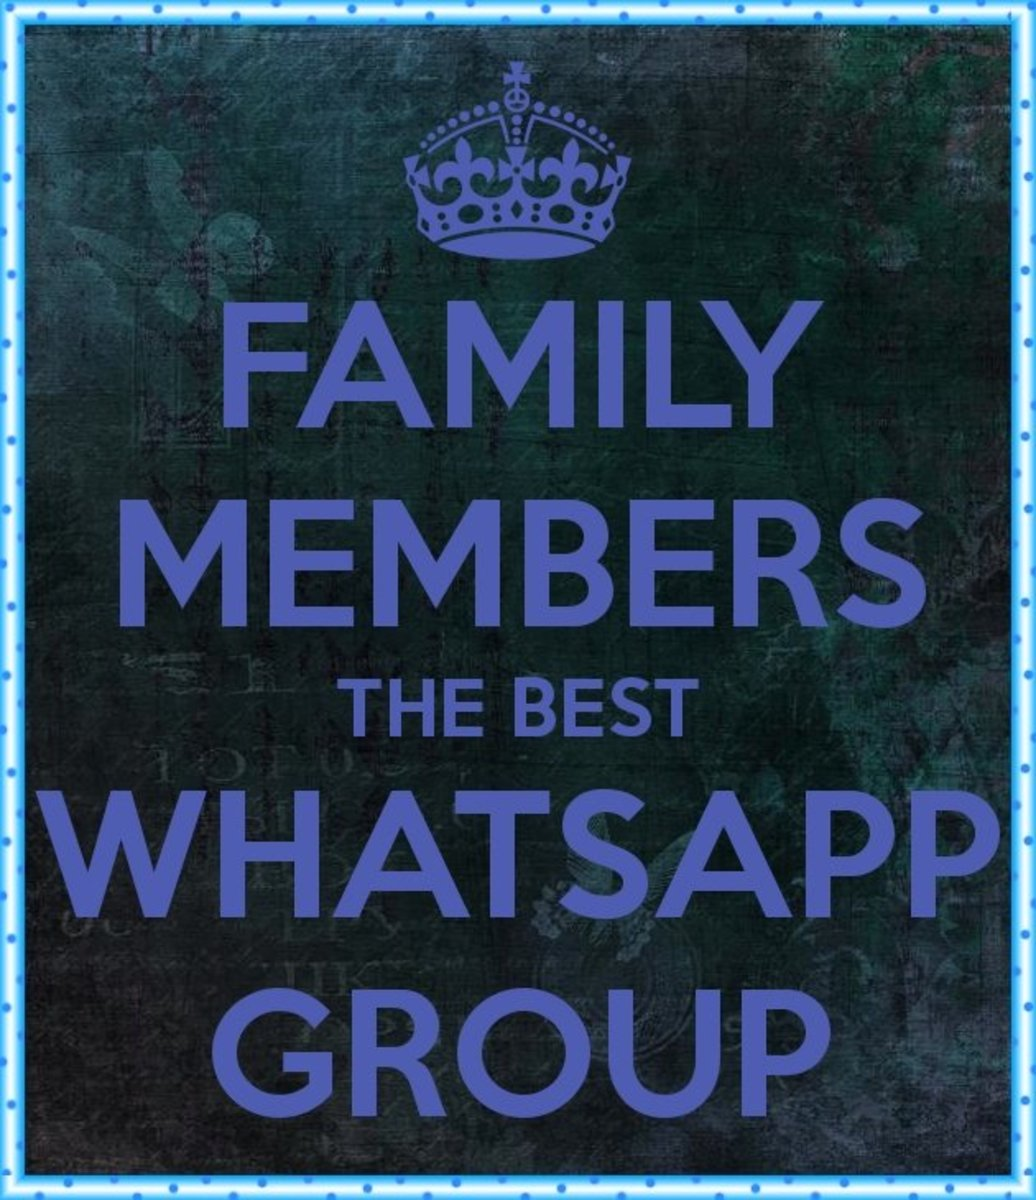 Funny Whatsapp Group Names for Family Friends | HubPages